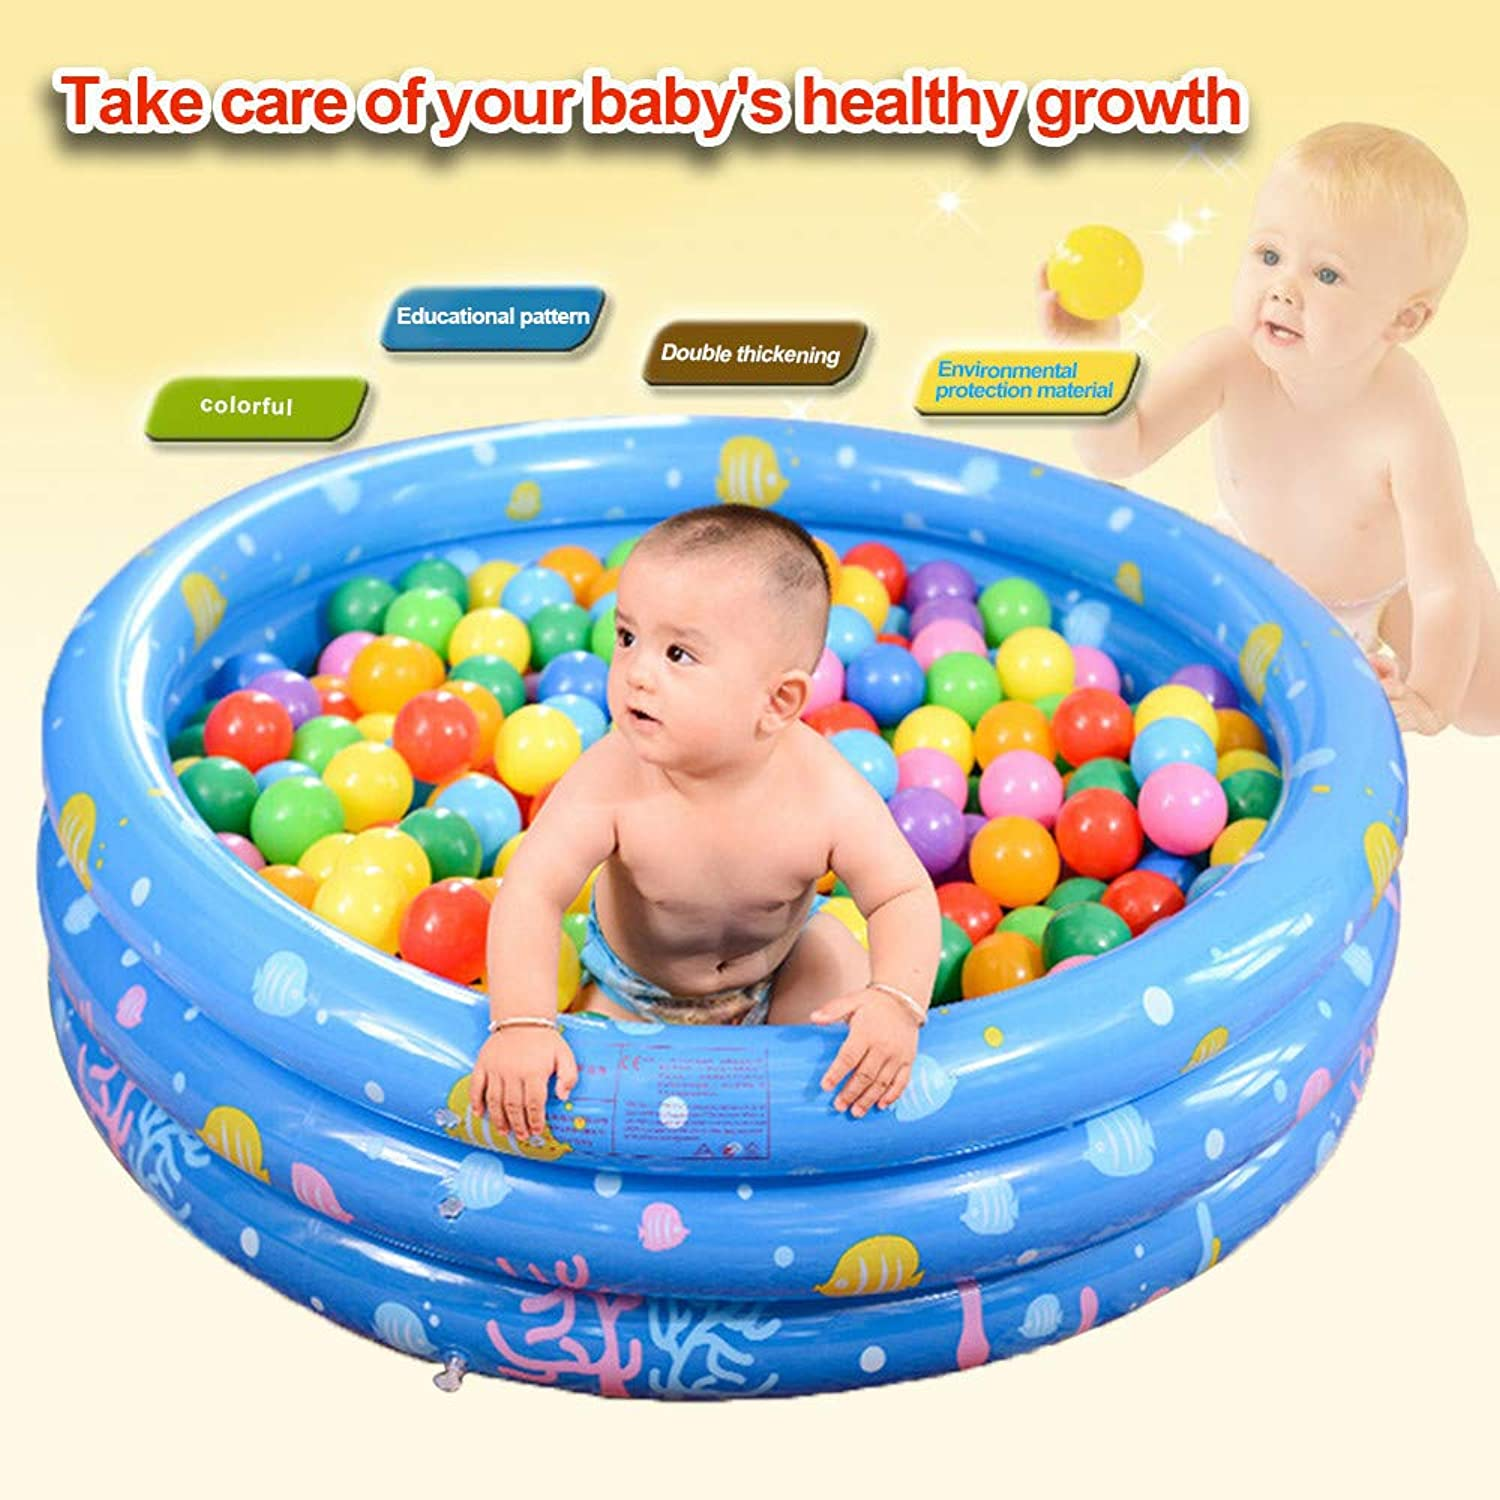 Round Inflatable Family Pool,Swim Center Family Inflatable Kiddie Pool, Ball Pool, Family Kids Water Play Fun in Summer, for Ages 2+ (XL, bluee)